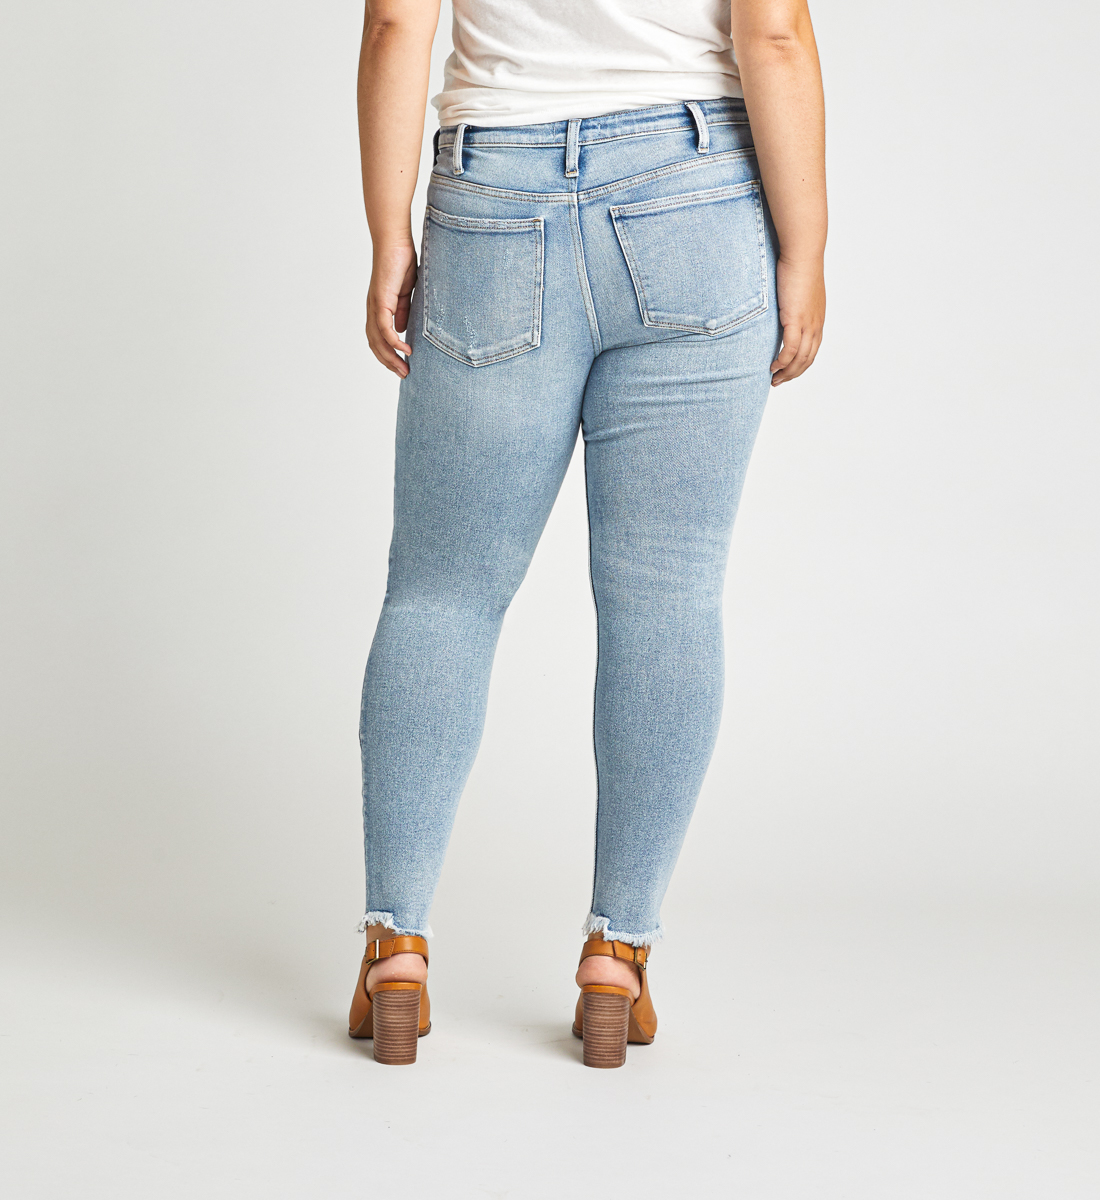 Most Wanted Mid Rise Skinny Jeans Plus Size Back